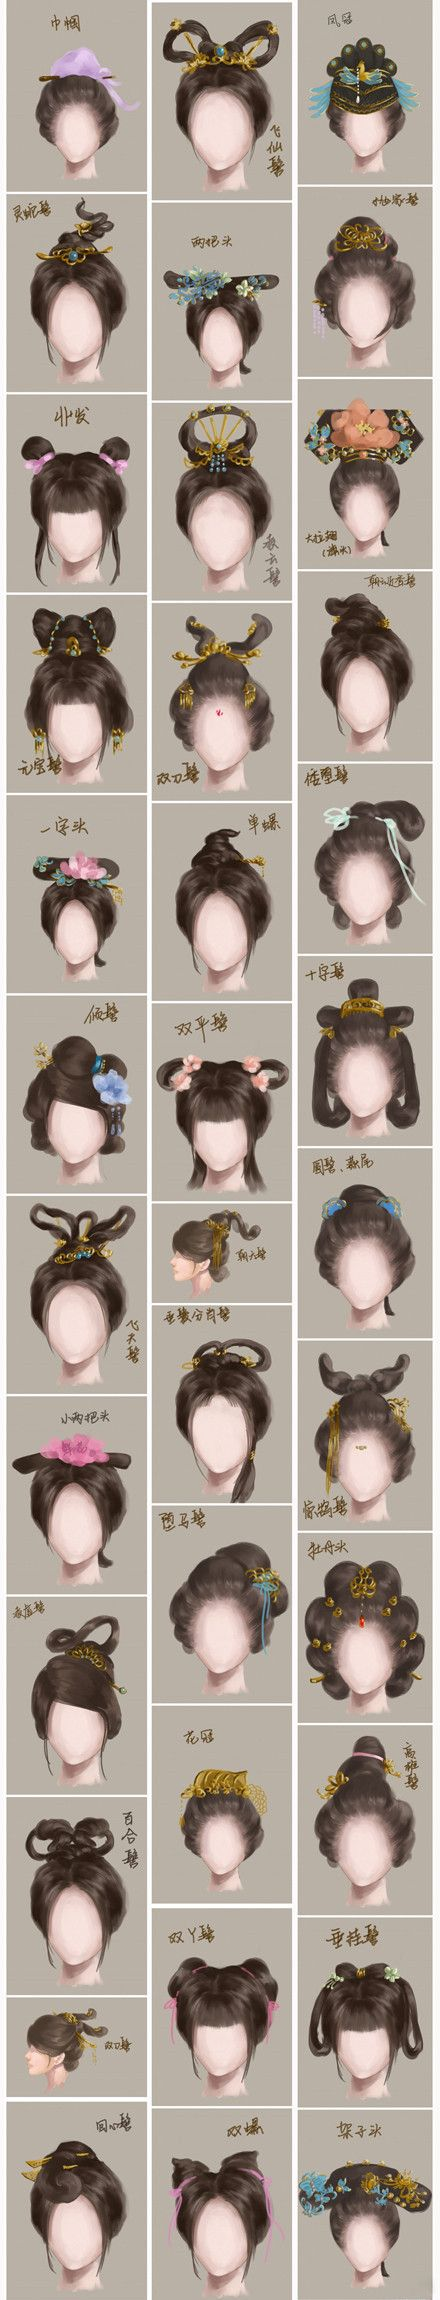 Ancient Chinese Hair Styles Art Doll Bjd Tutorials